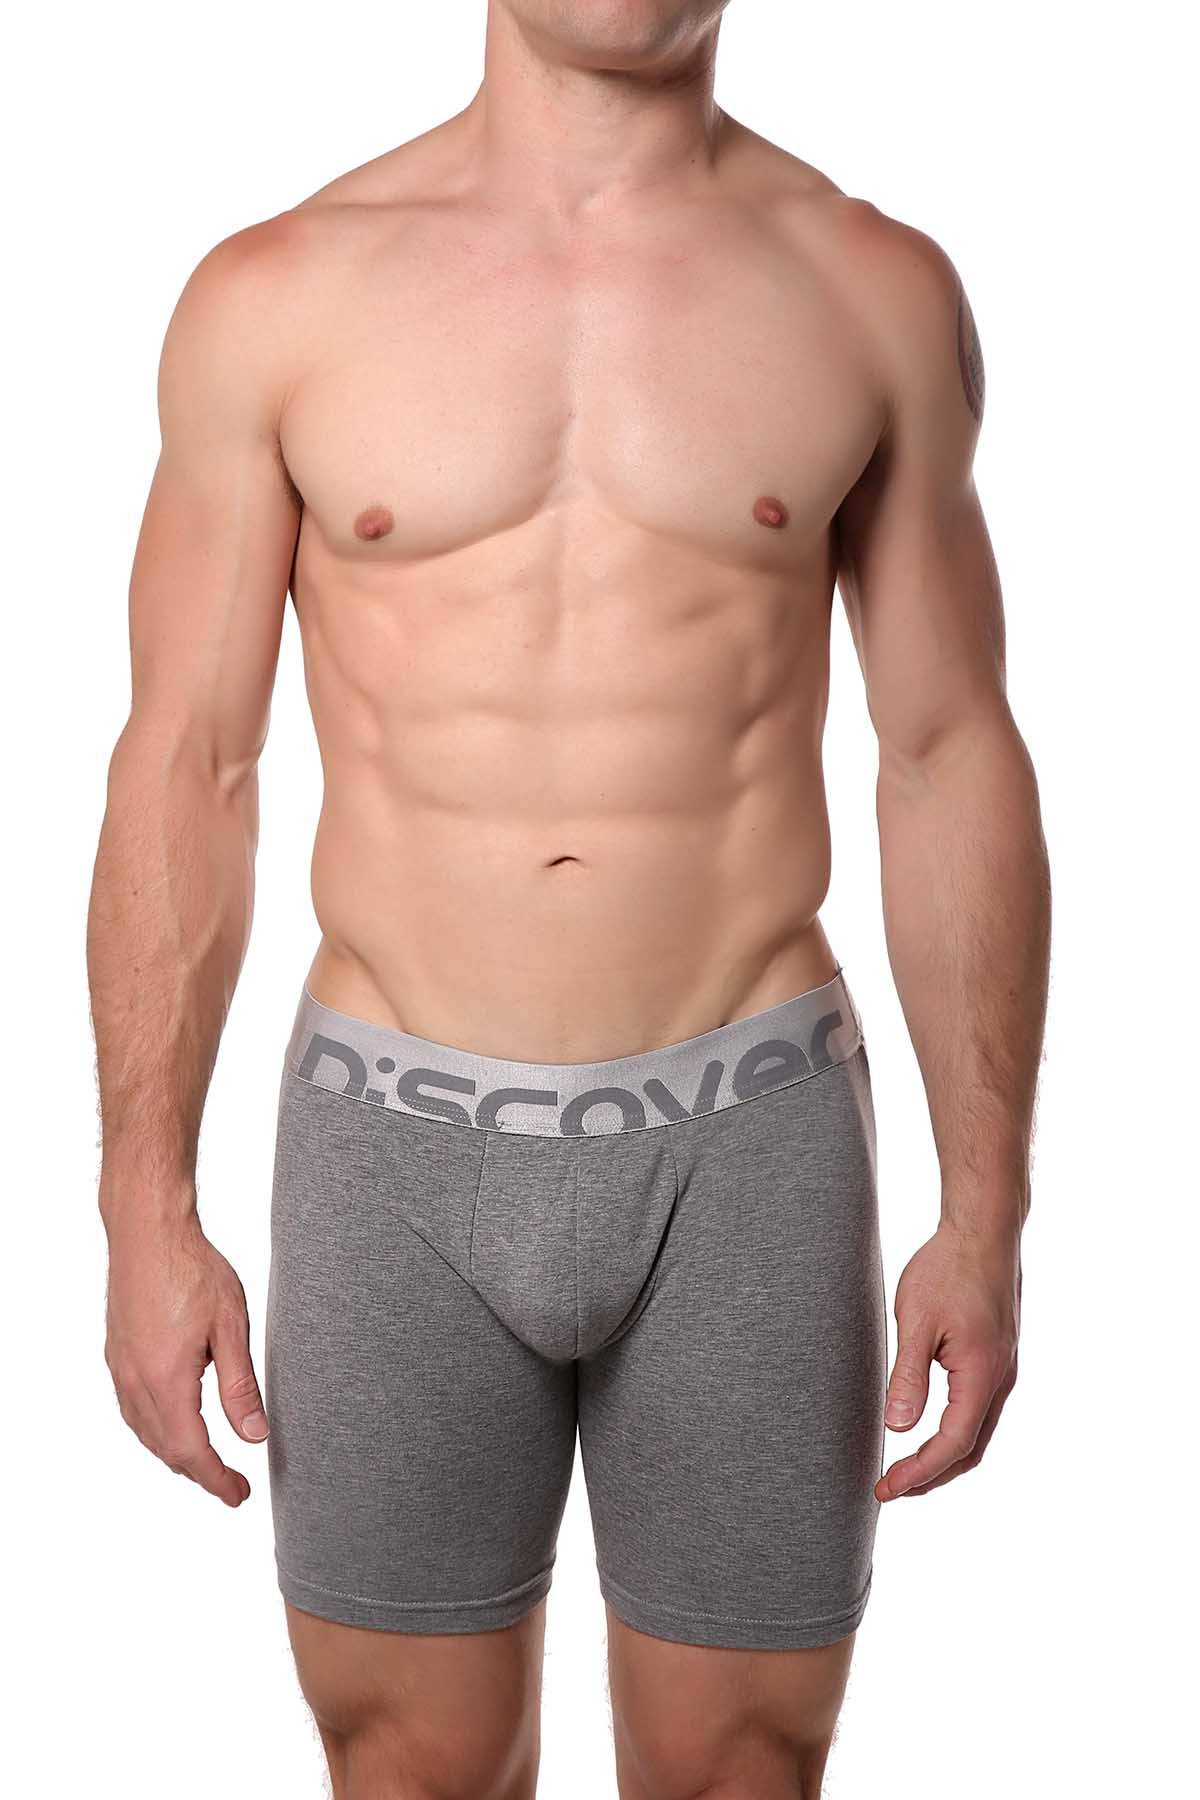 Discover Stone-Grey Silver Surf Boxer Brief